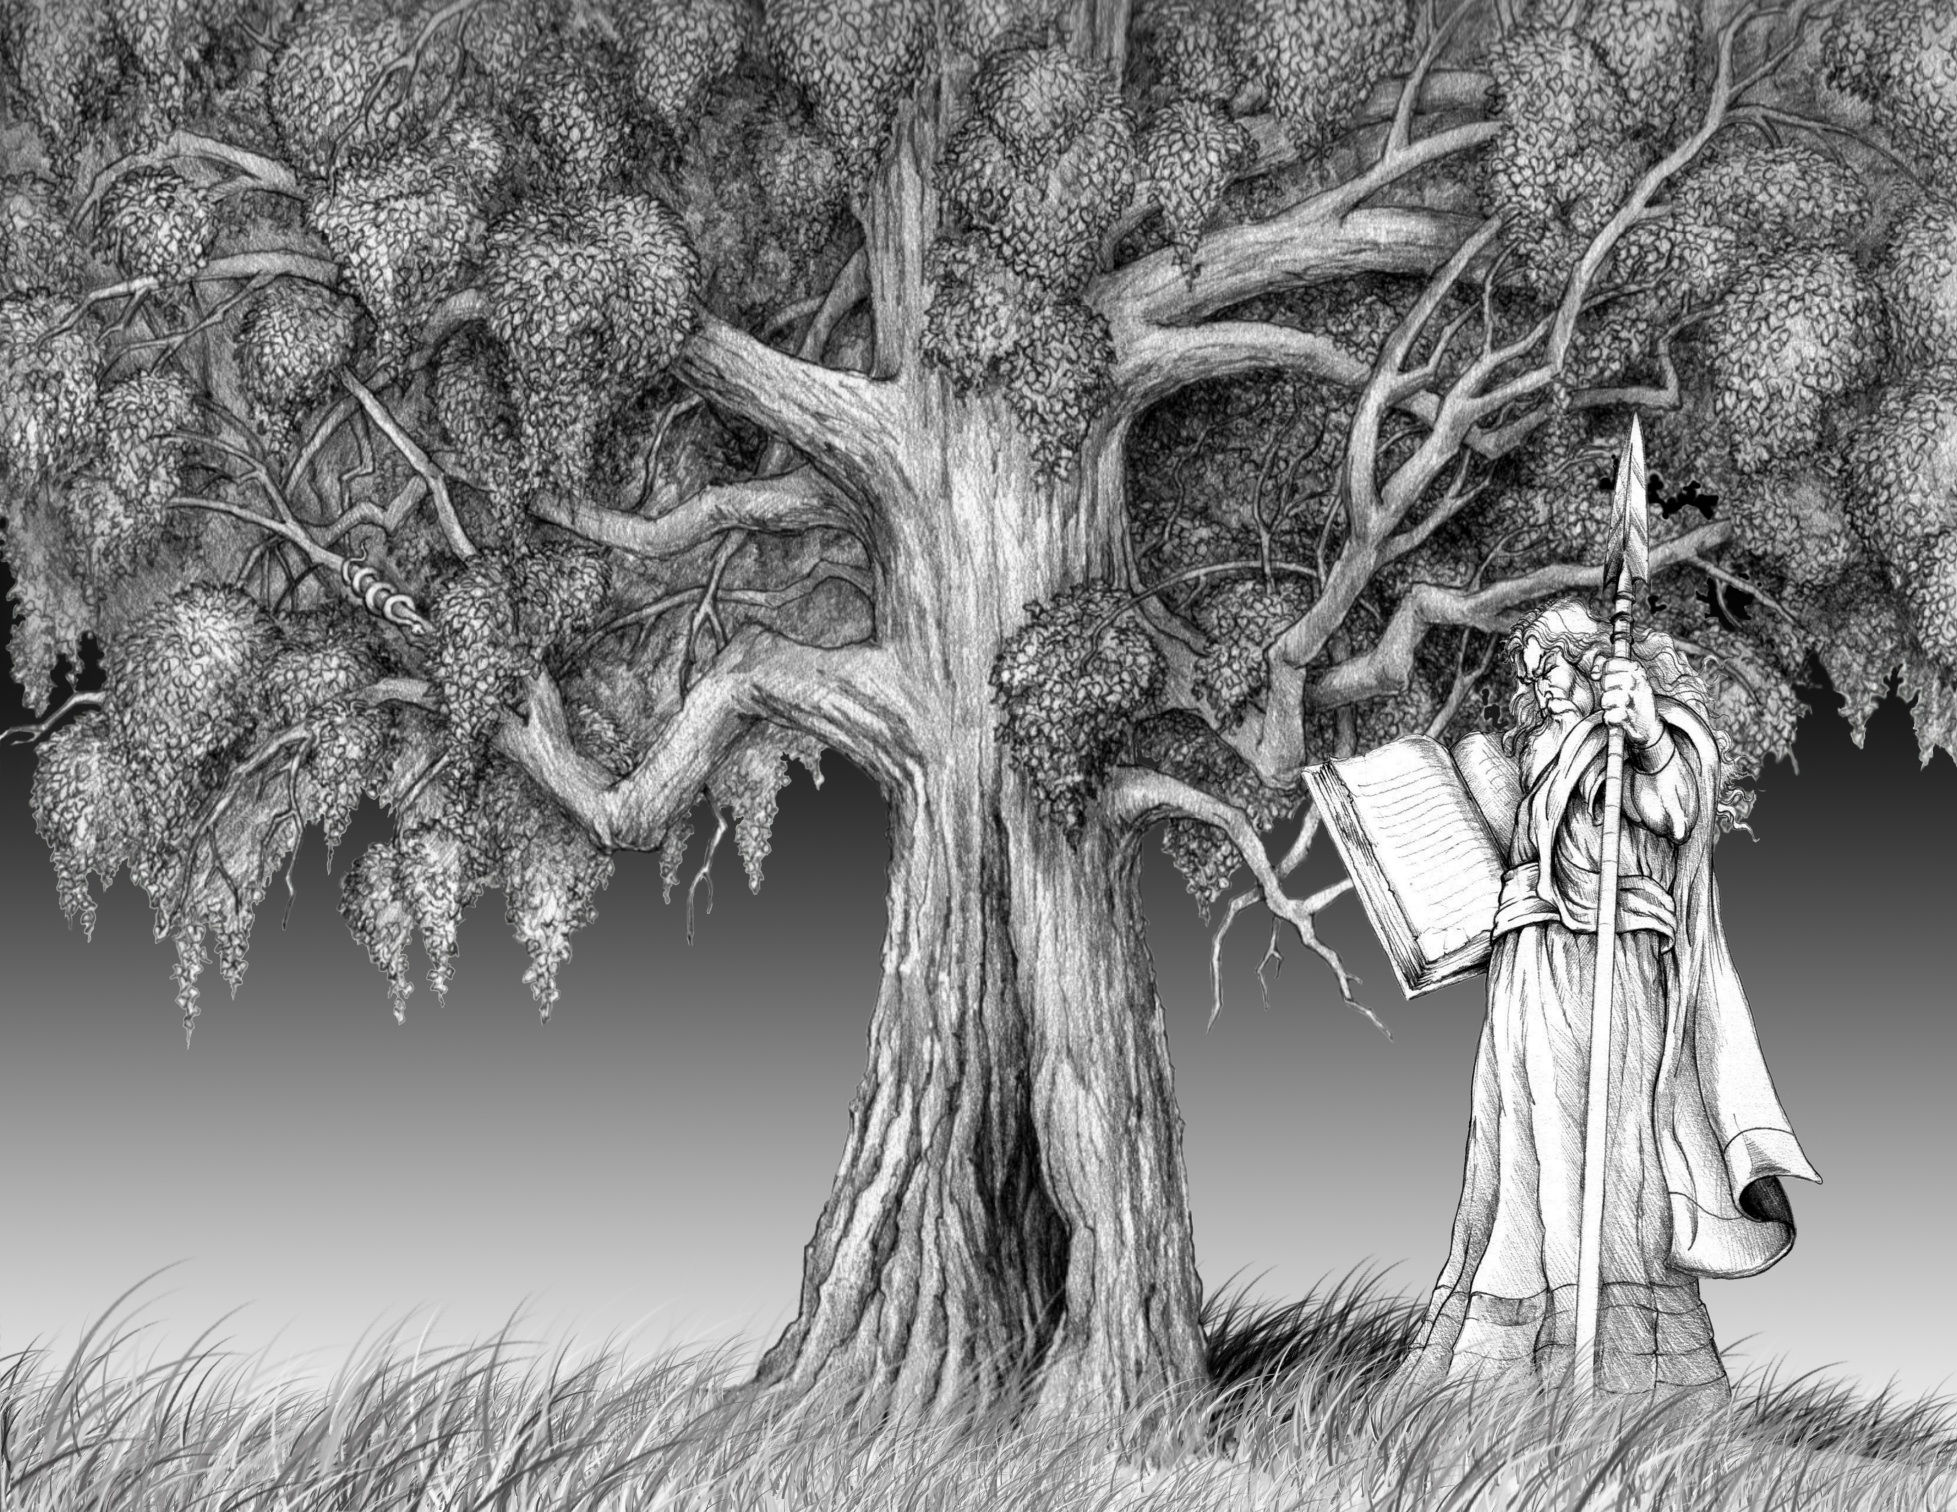 Wotan and Yggdrasil by Culhain on DeviantArt.